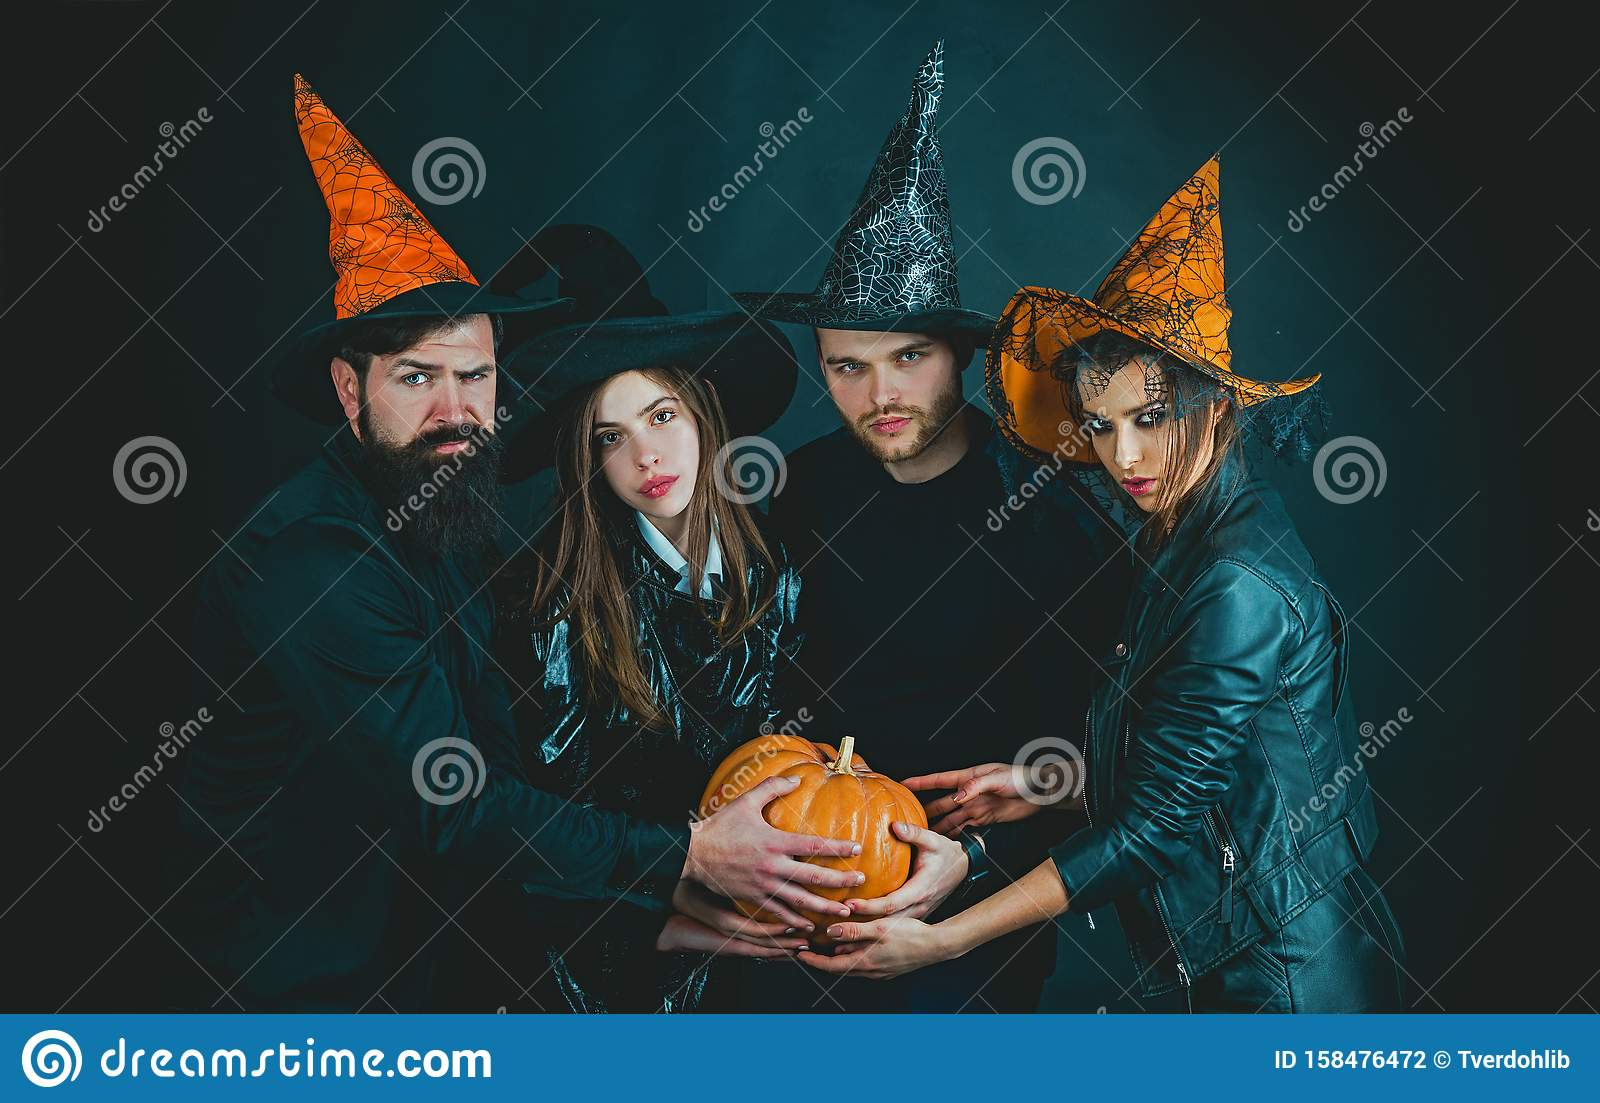 Funny friends at a Halloween party. Happy Halloween. Halloween group. Enjoying nice Halloween together.